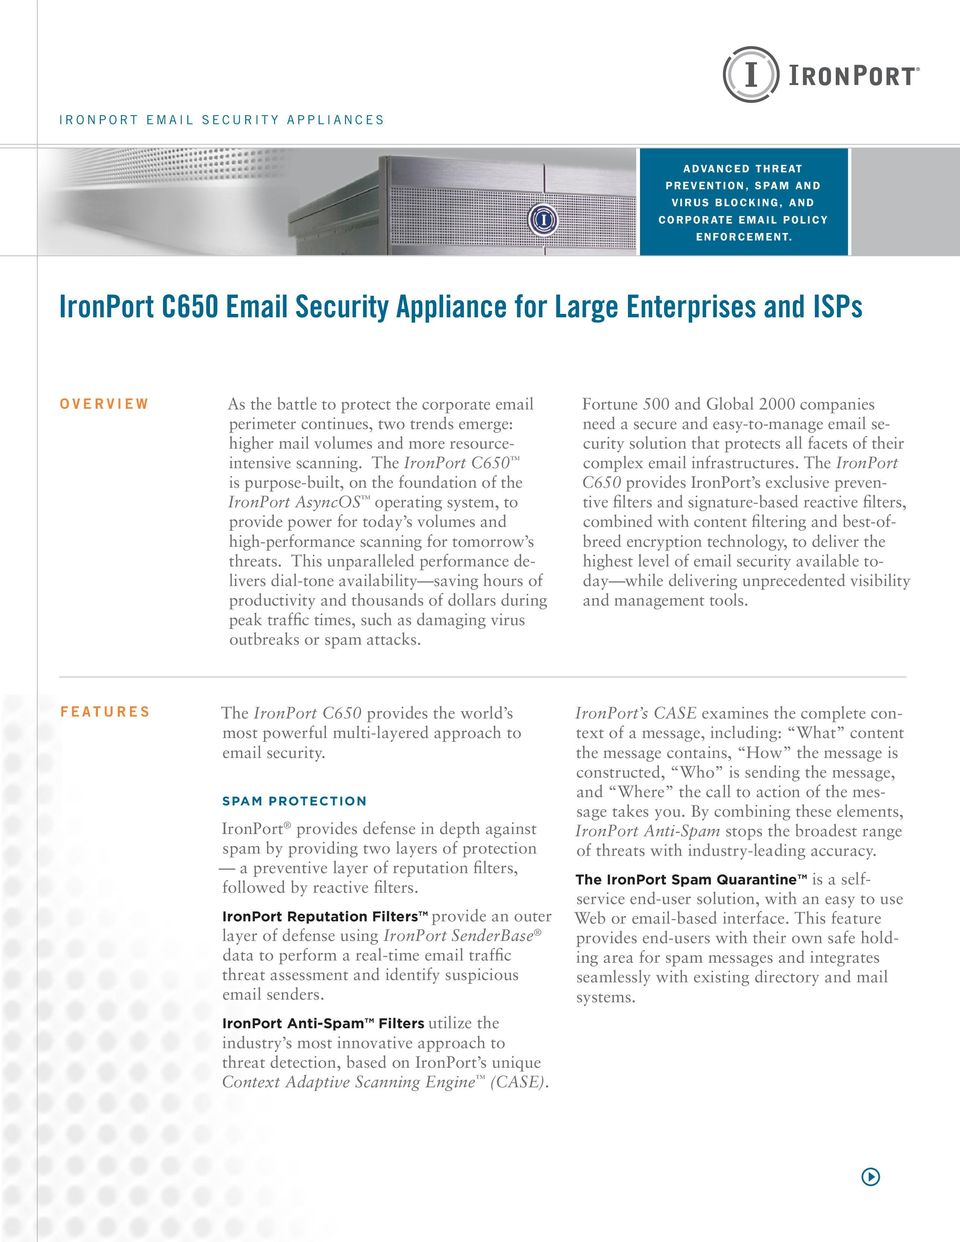 IronPort C650 Email Security Appliance for Large Enterprises and ISPs O v e r v i e w As the battle to protect the corporate email perimeter continues, two trends emerge: higher mail volumes and more